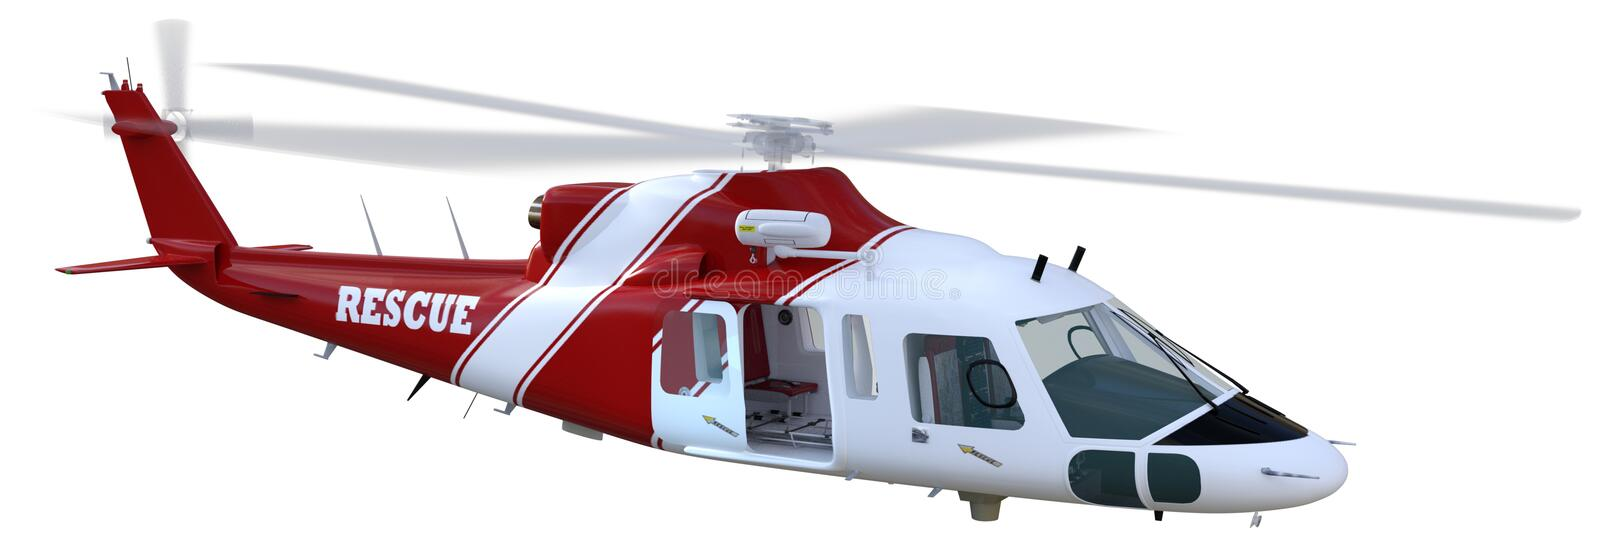 Medical Rescue Helicopter Isolated Illustration royalty free illustration